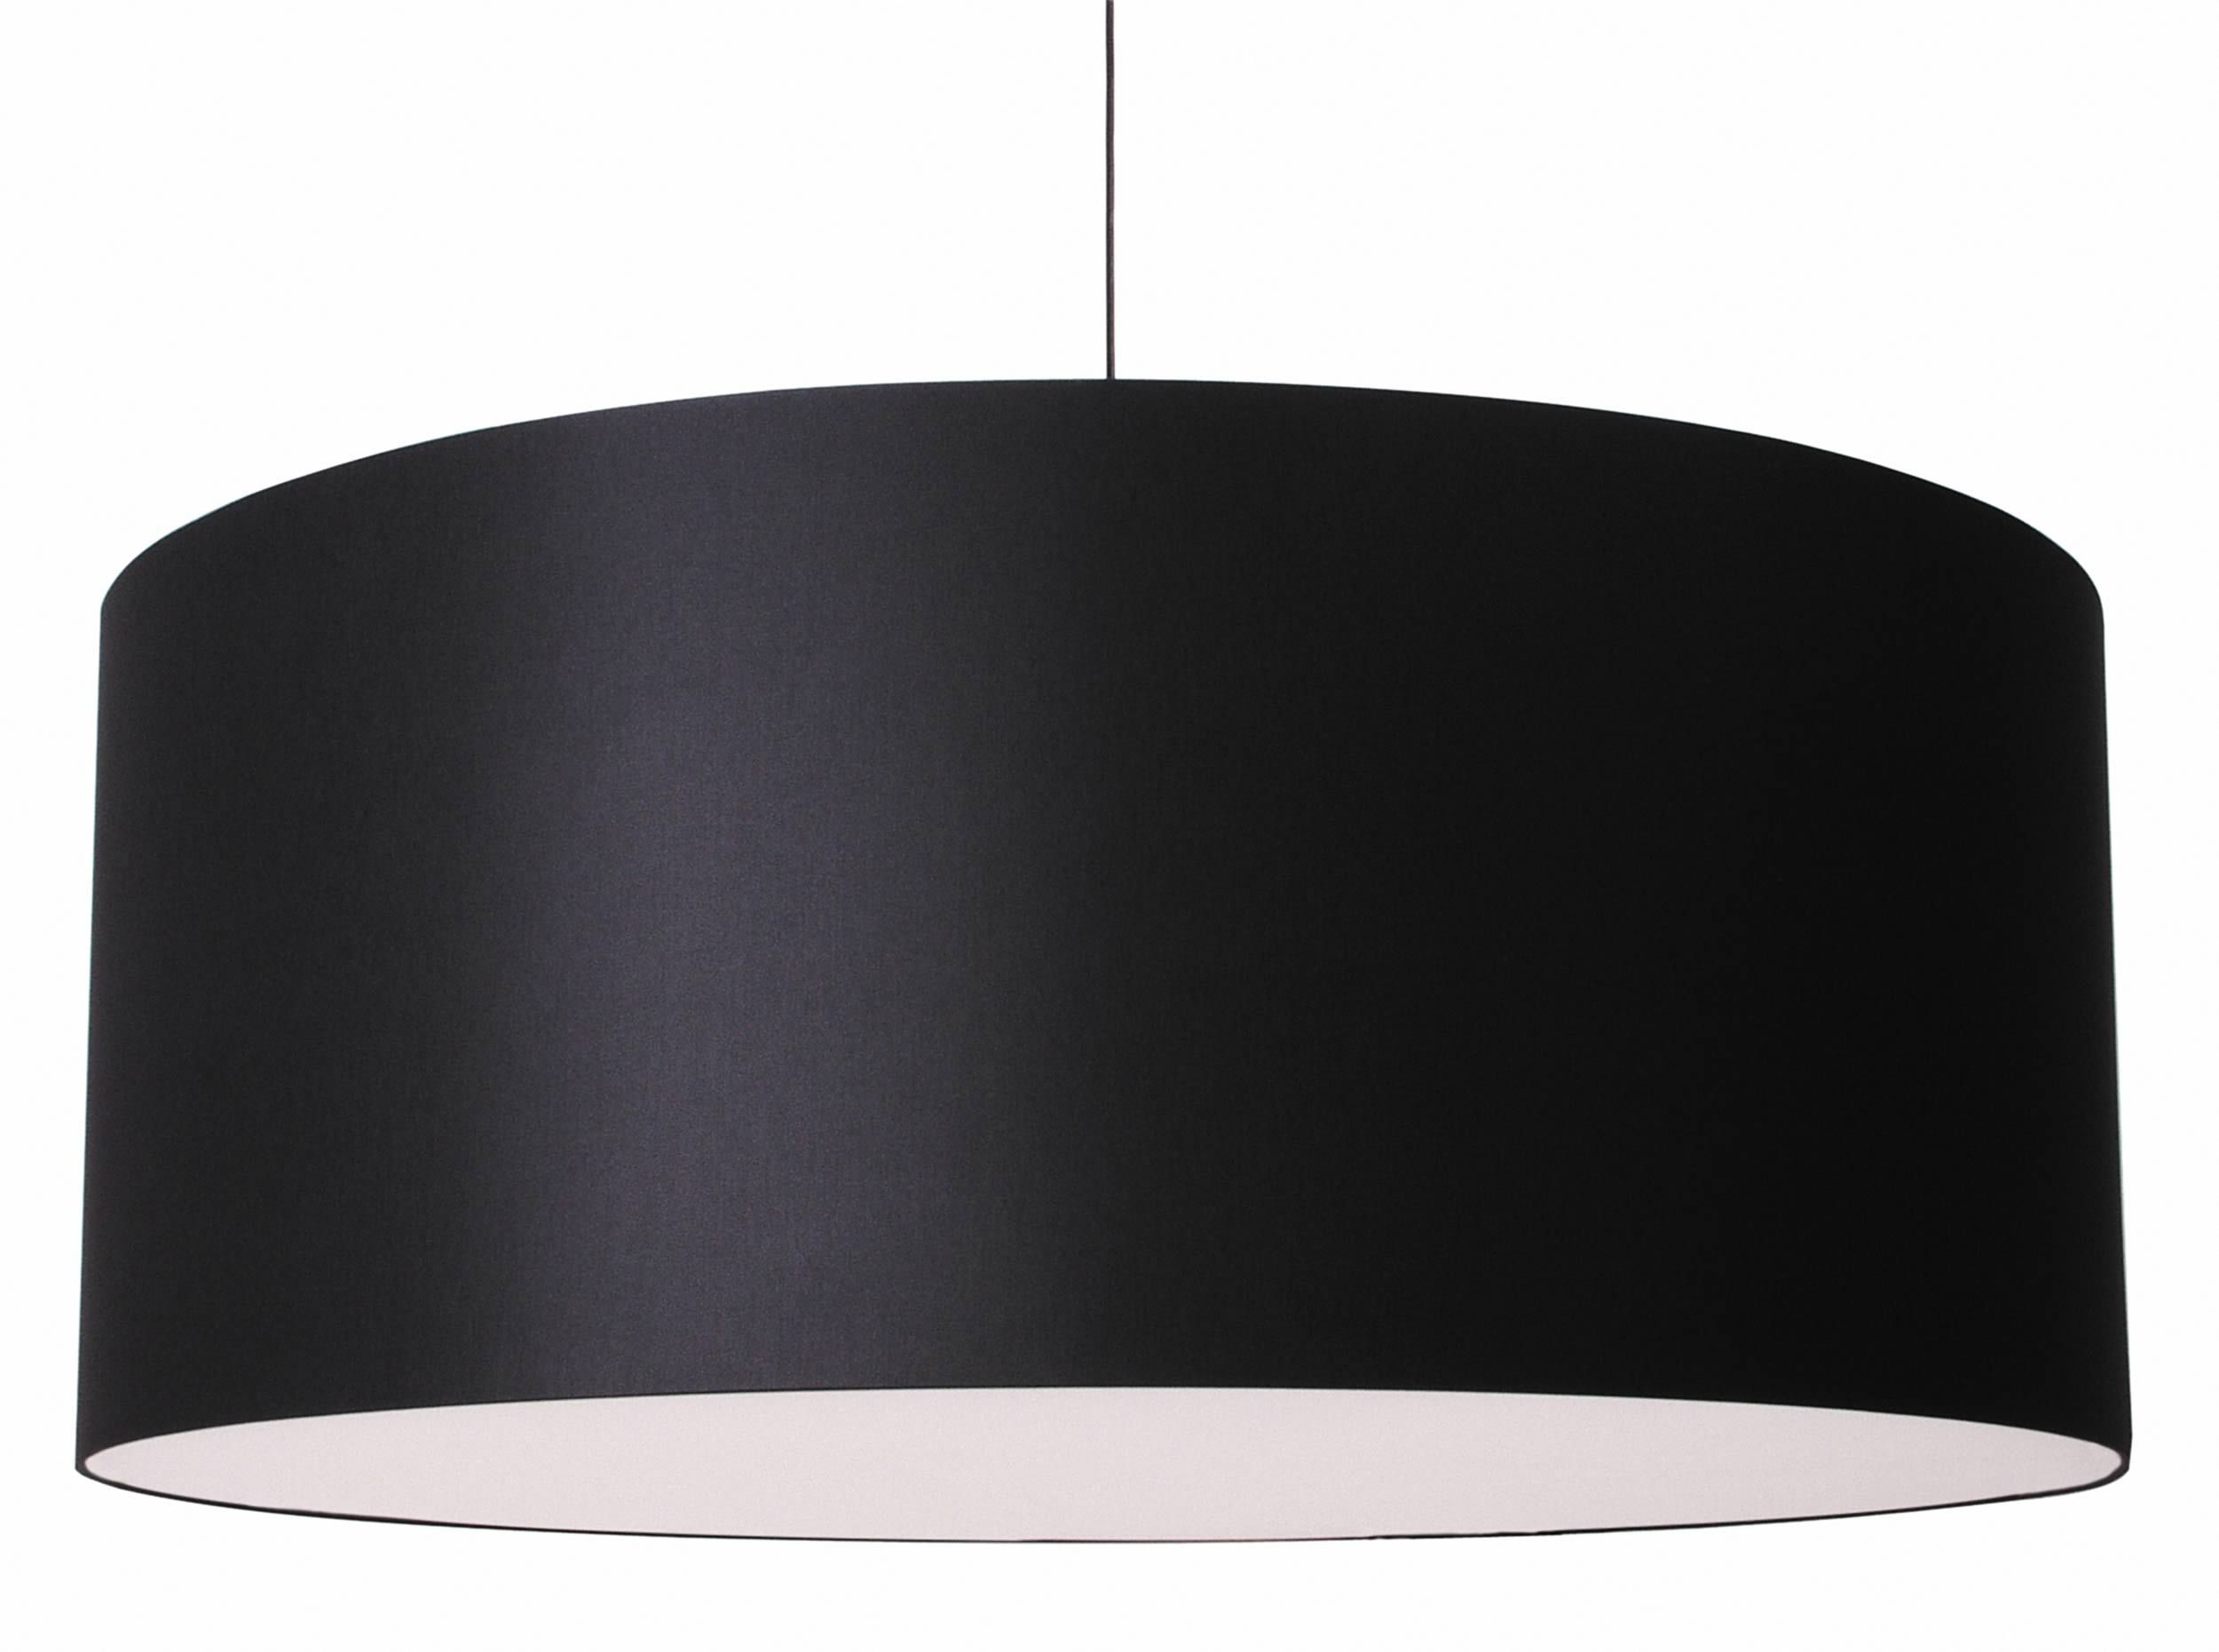 Piet Boon Lampen : Love this lighting by moooi round boon black by piet boon